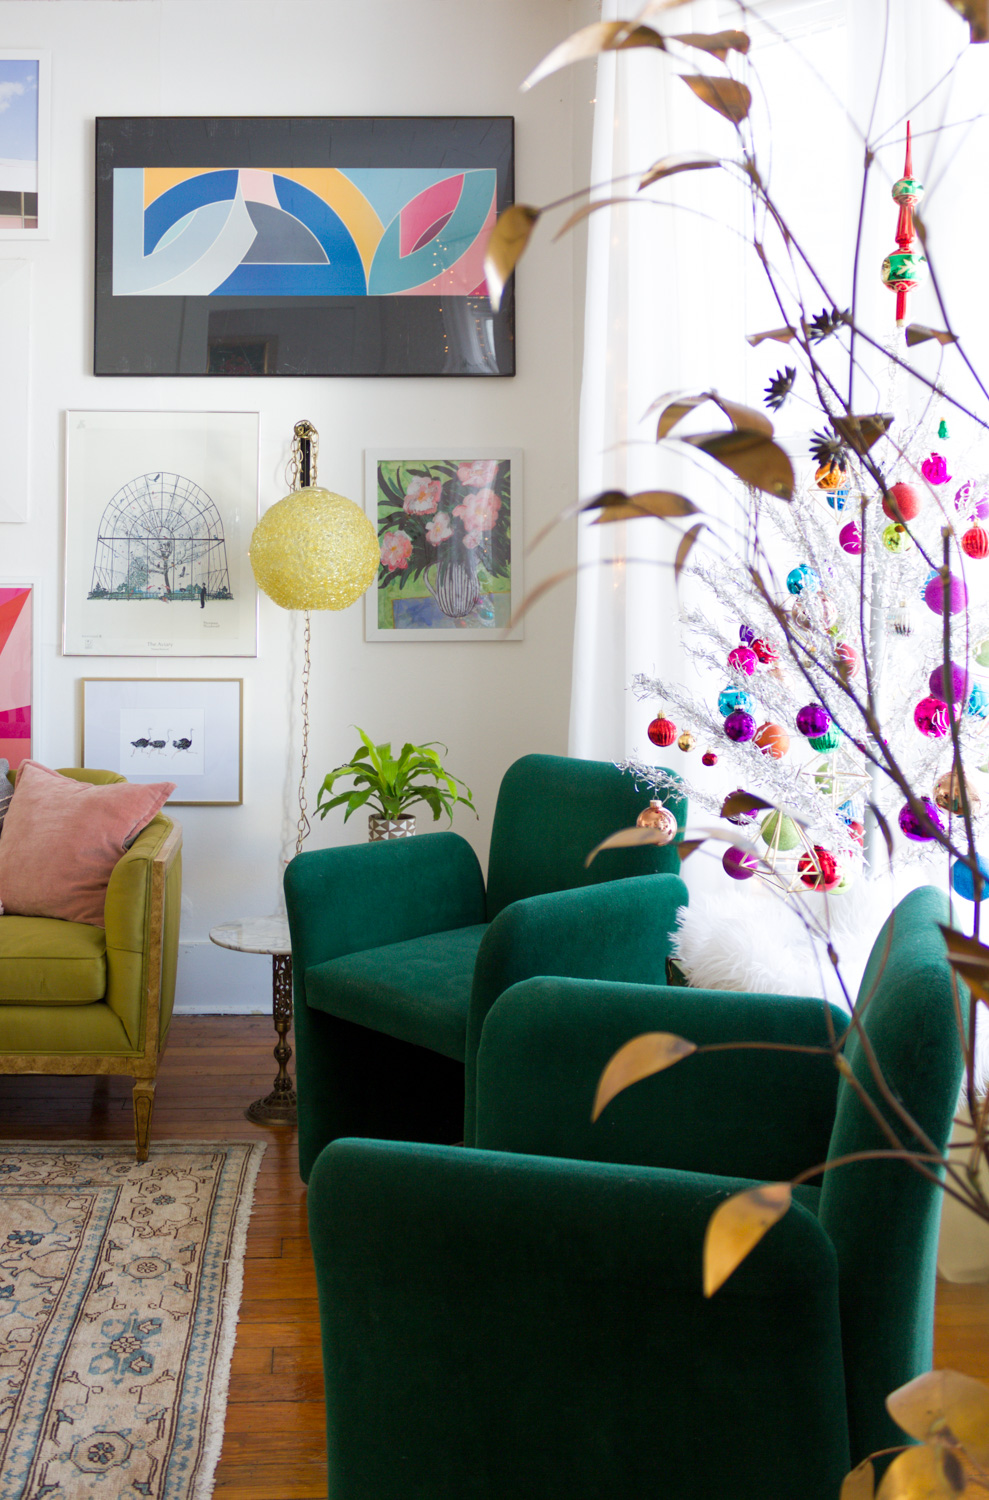 living room gallery wall with green velvet chairs and vintage silver aluminum Christmas tree